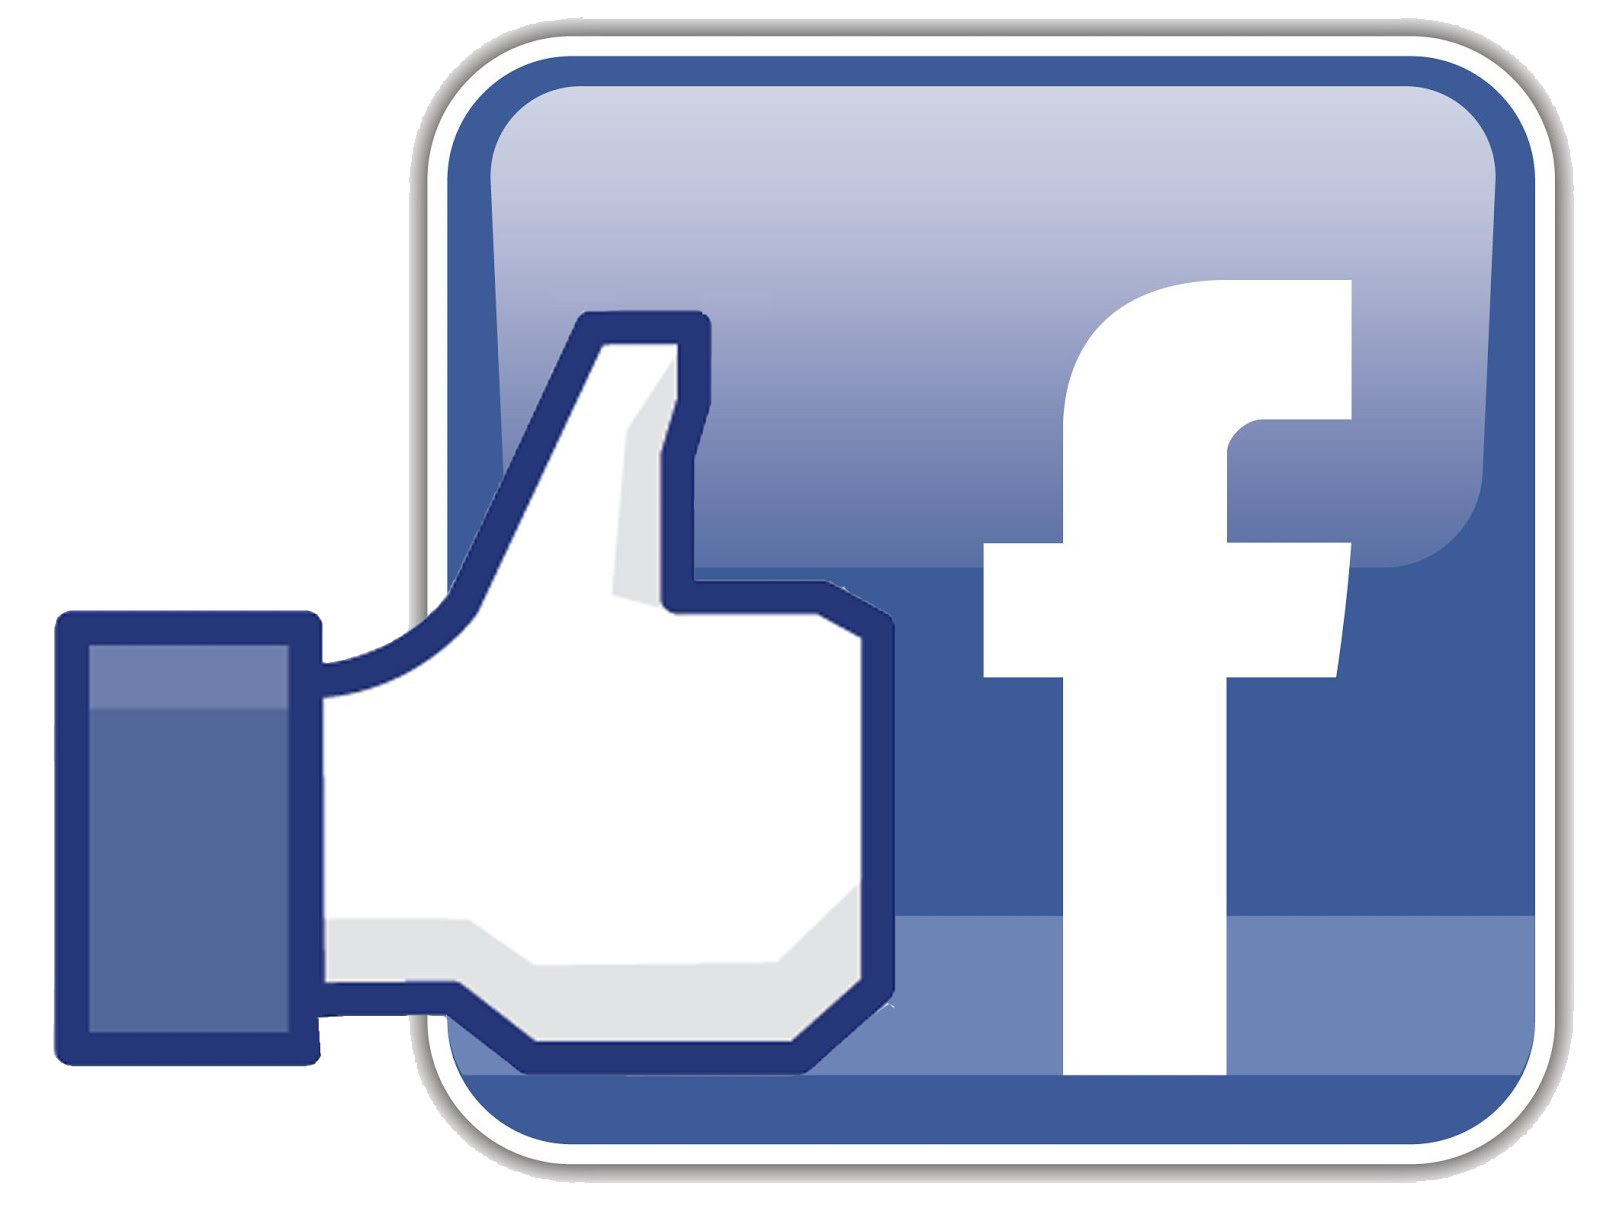 Facebook logo image Facebook Logo Png - Free Icons and PNG Backgrounds image